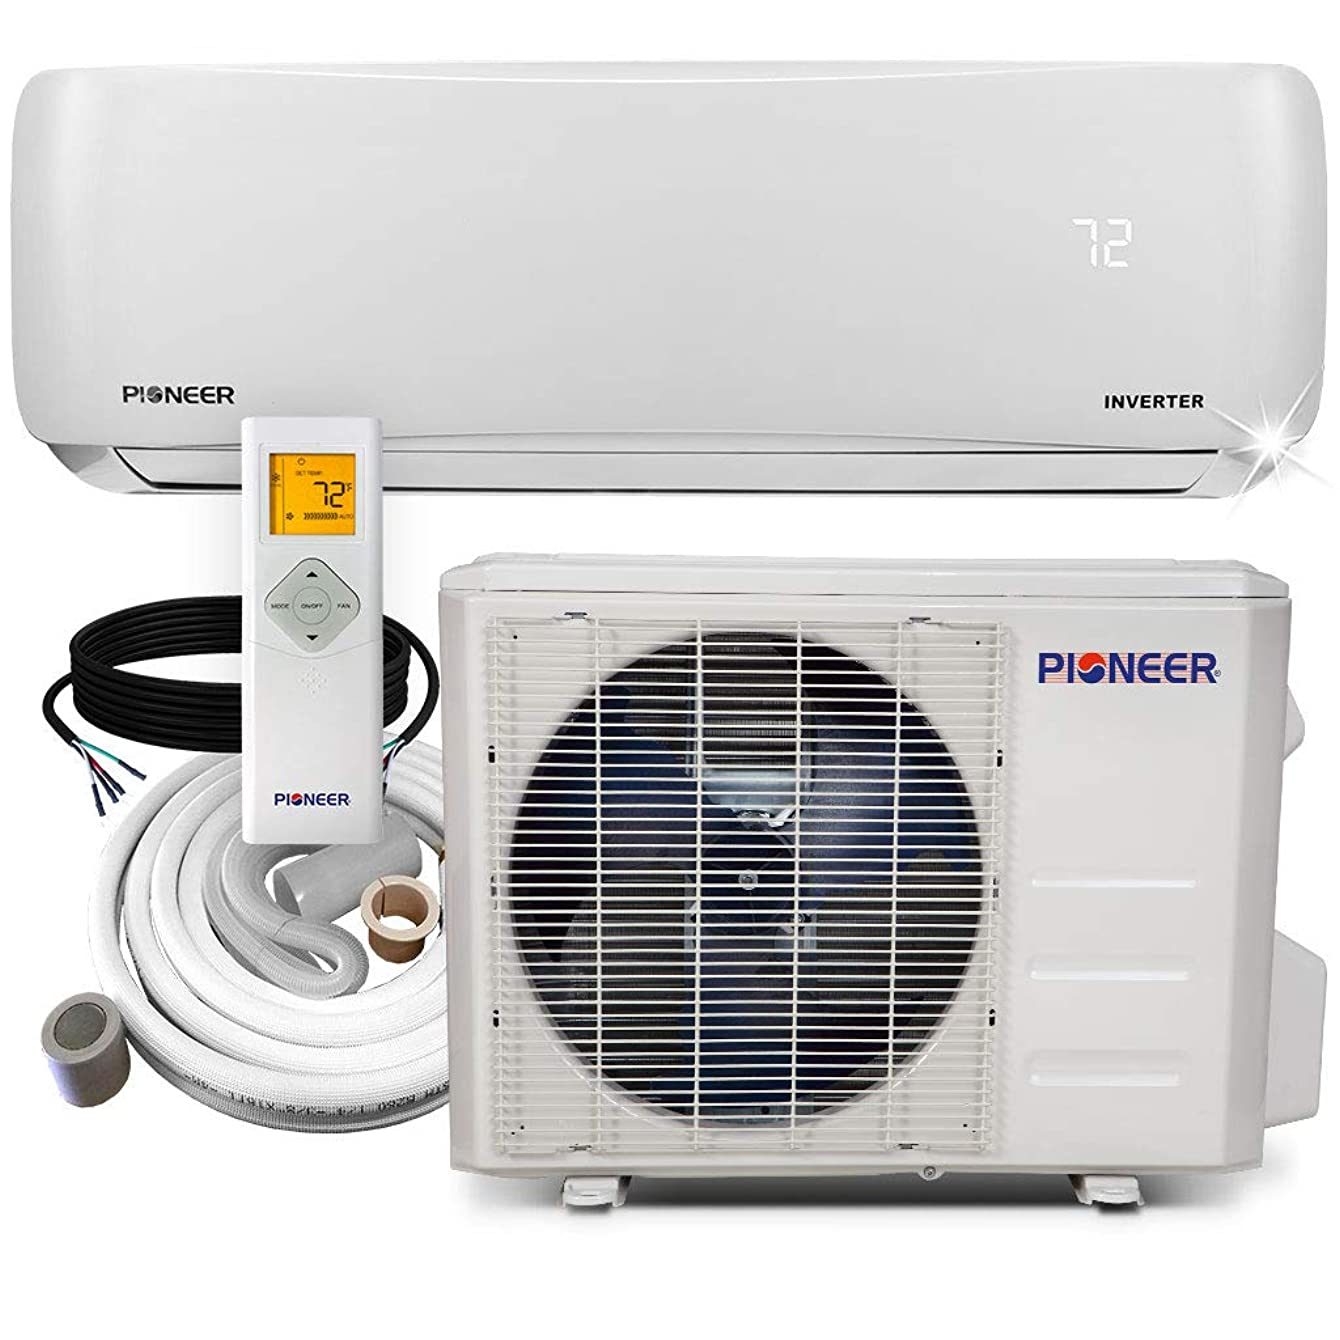 PIONEER Air Conditioner WYS018GMFI22RL Mini Split Heat Pump, 18000 BTU-208/230 V